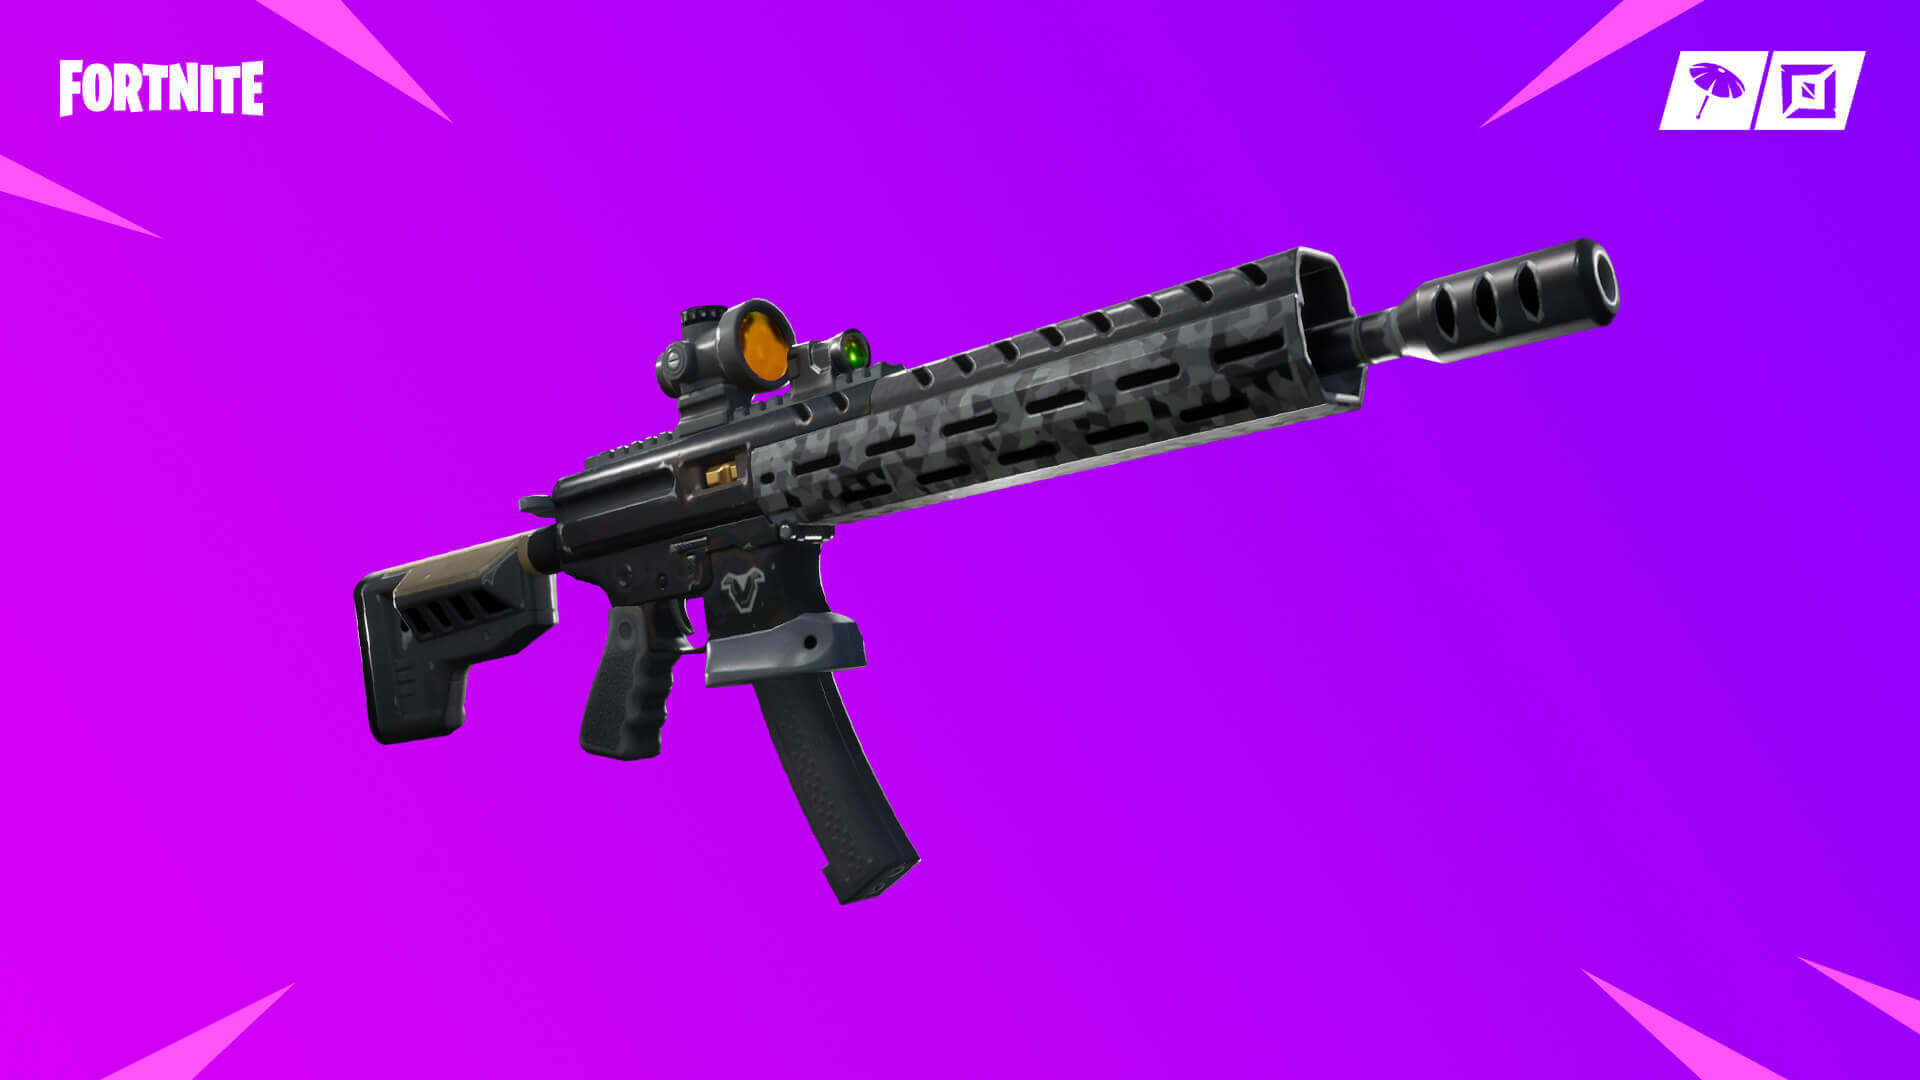 Fortnite v9 01 Patch Notes: P90 Vaulted and Drum Gun Nerfed